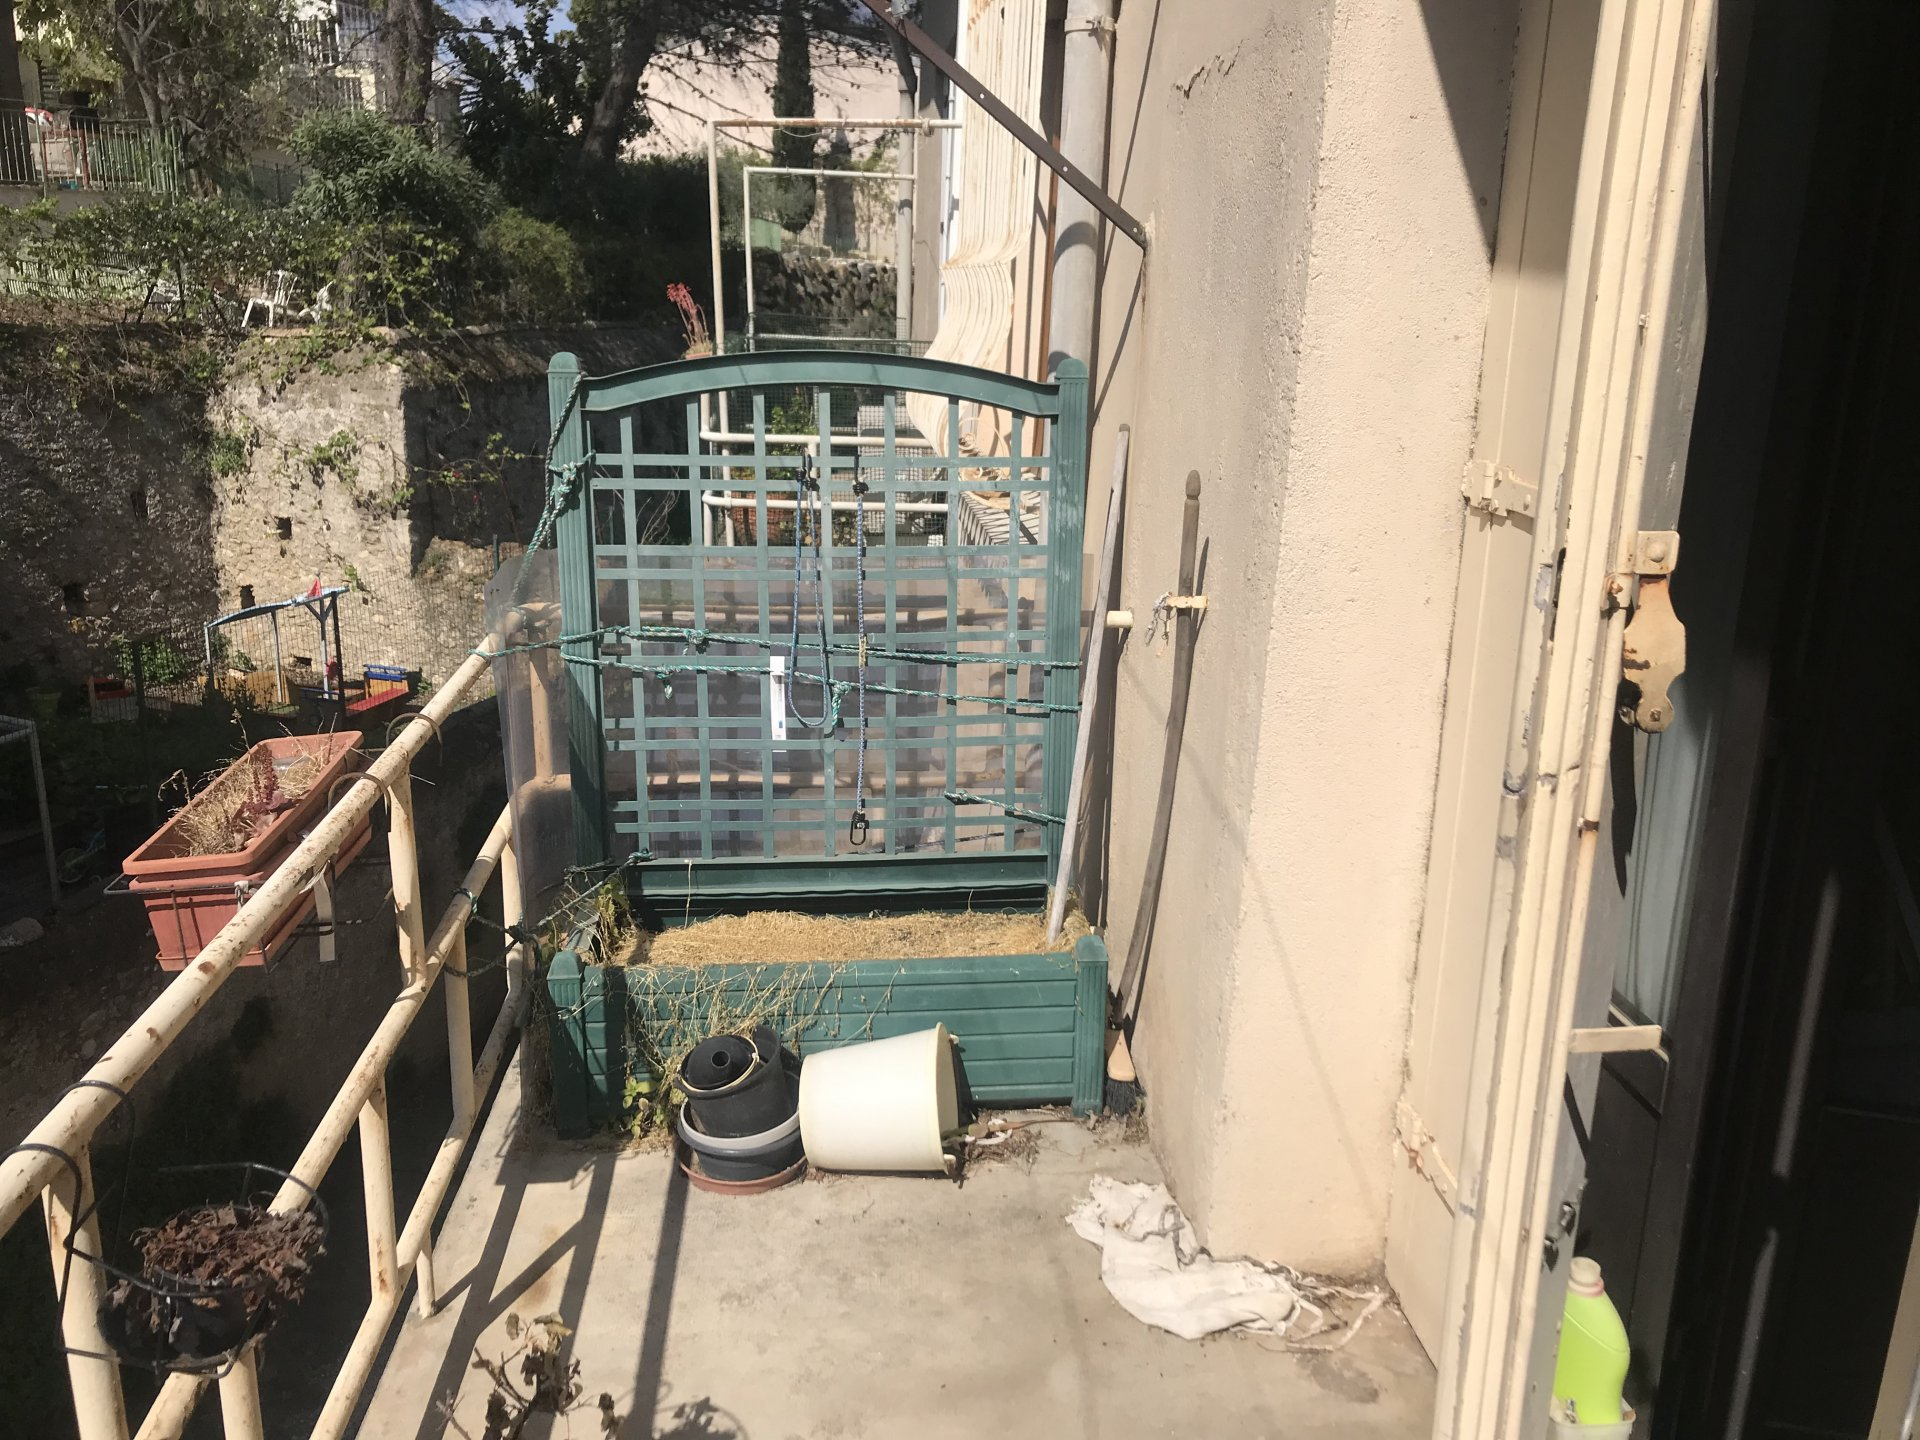 Winegrower property with terrace